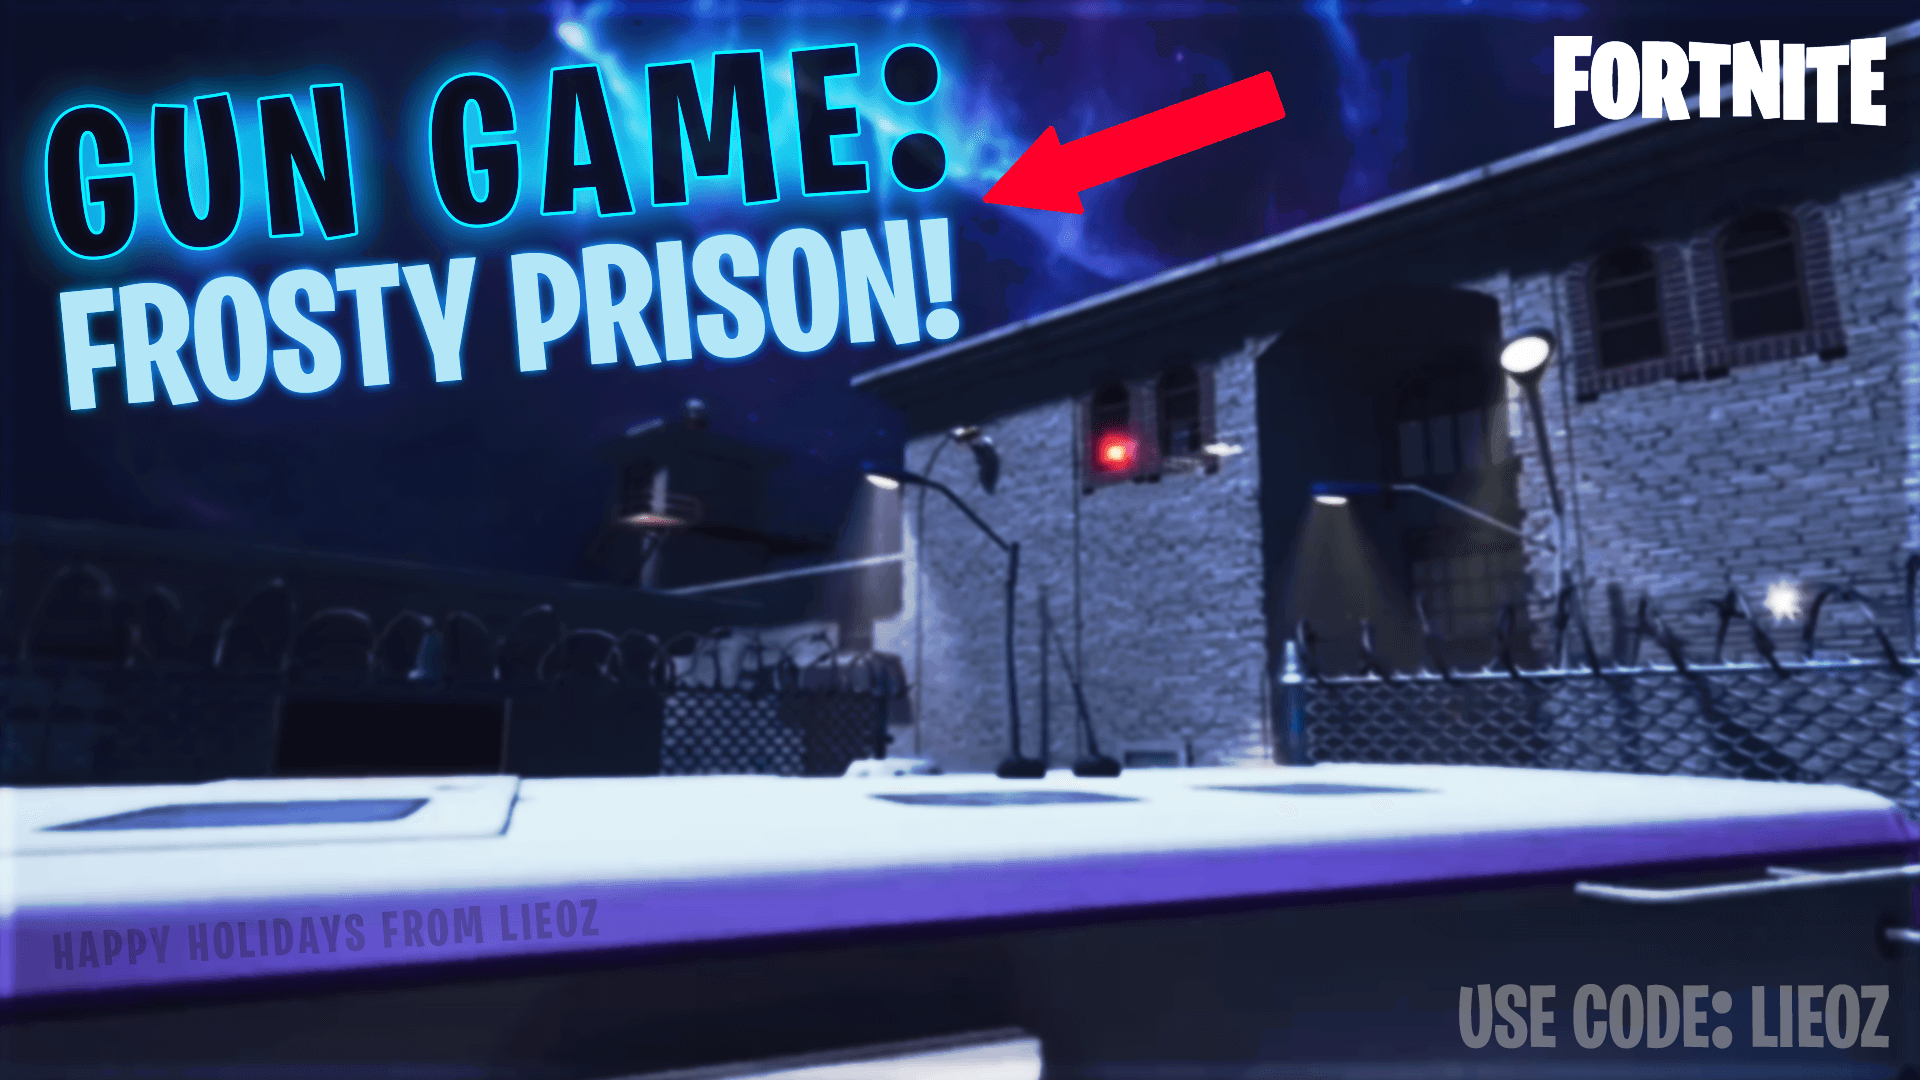 GUN GAME: FROSTY PRISON!